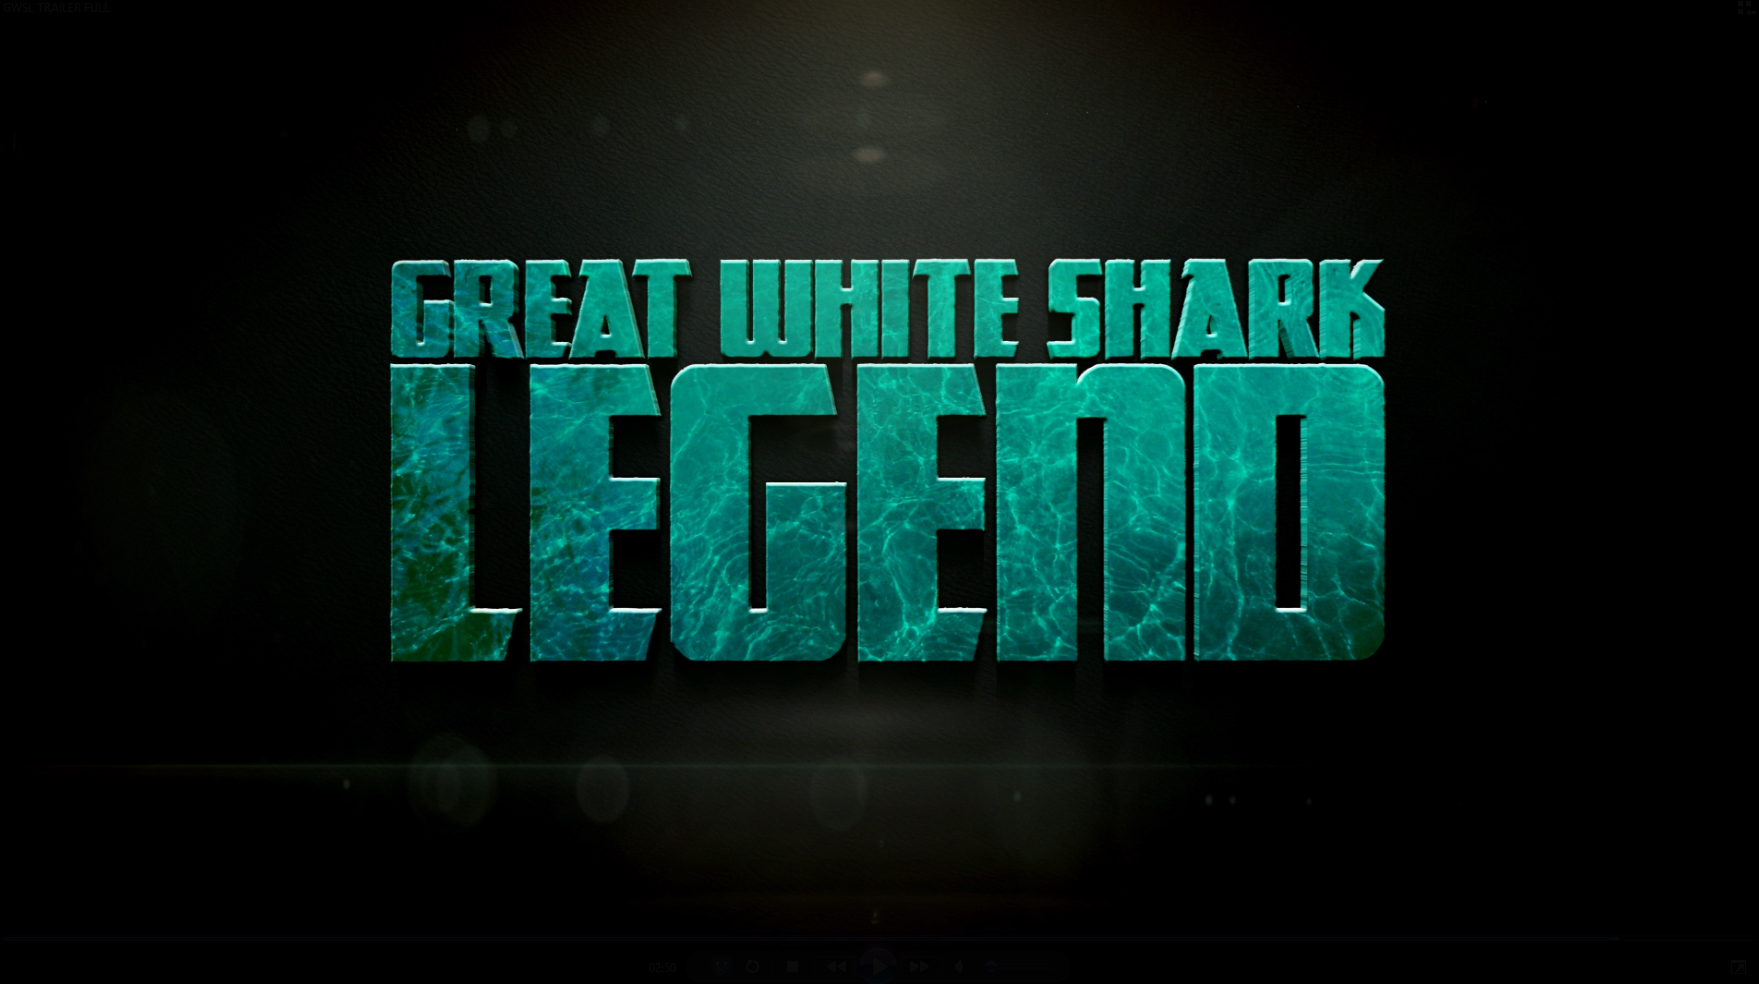 Great White Shark Legend